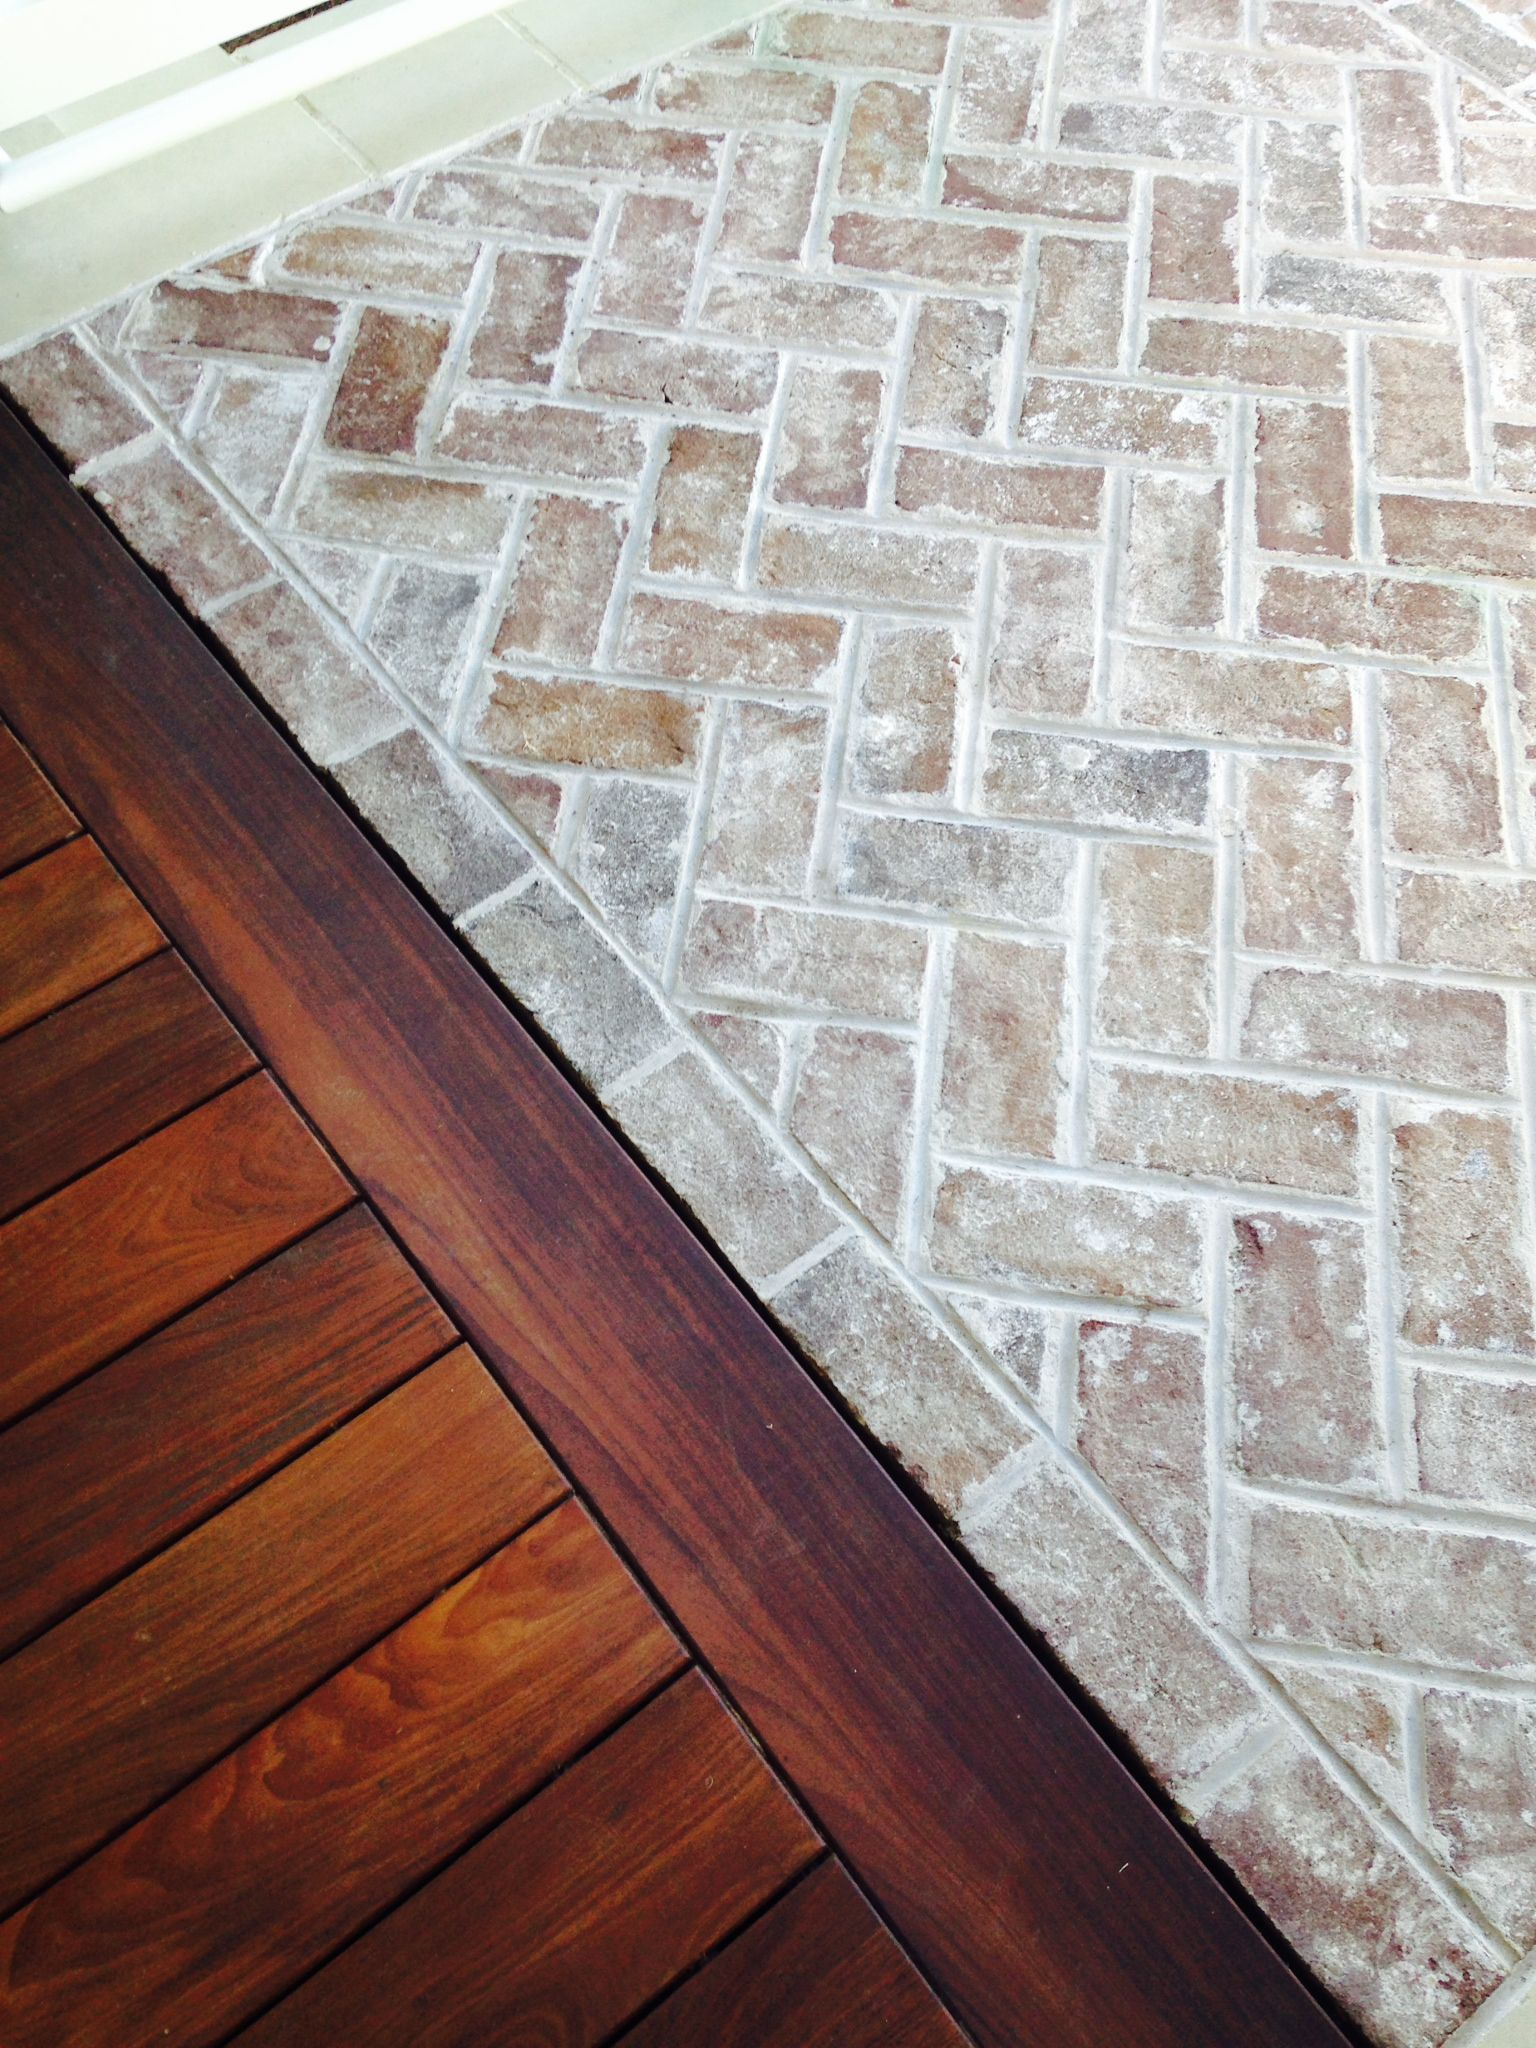 Savannah grey thin handmade bricks for flooring at sea pines savannah grey thin handmade bricks for flooring at sea pines resort on hilton head island dailygadgetfo Image collections